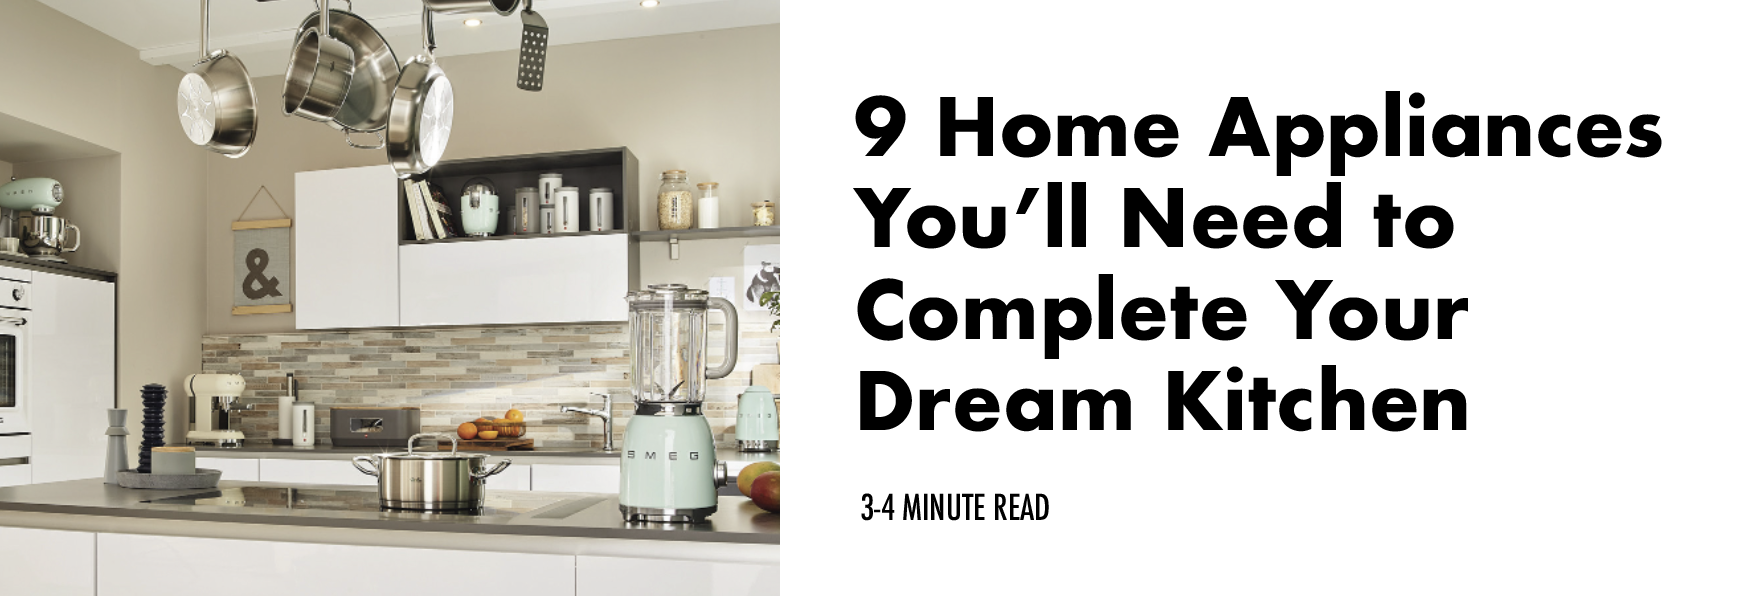 9 Home Appliances You'll Need to Complete Your Dream Kitchen